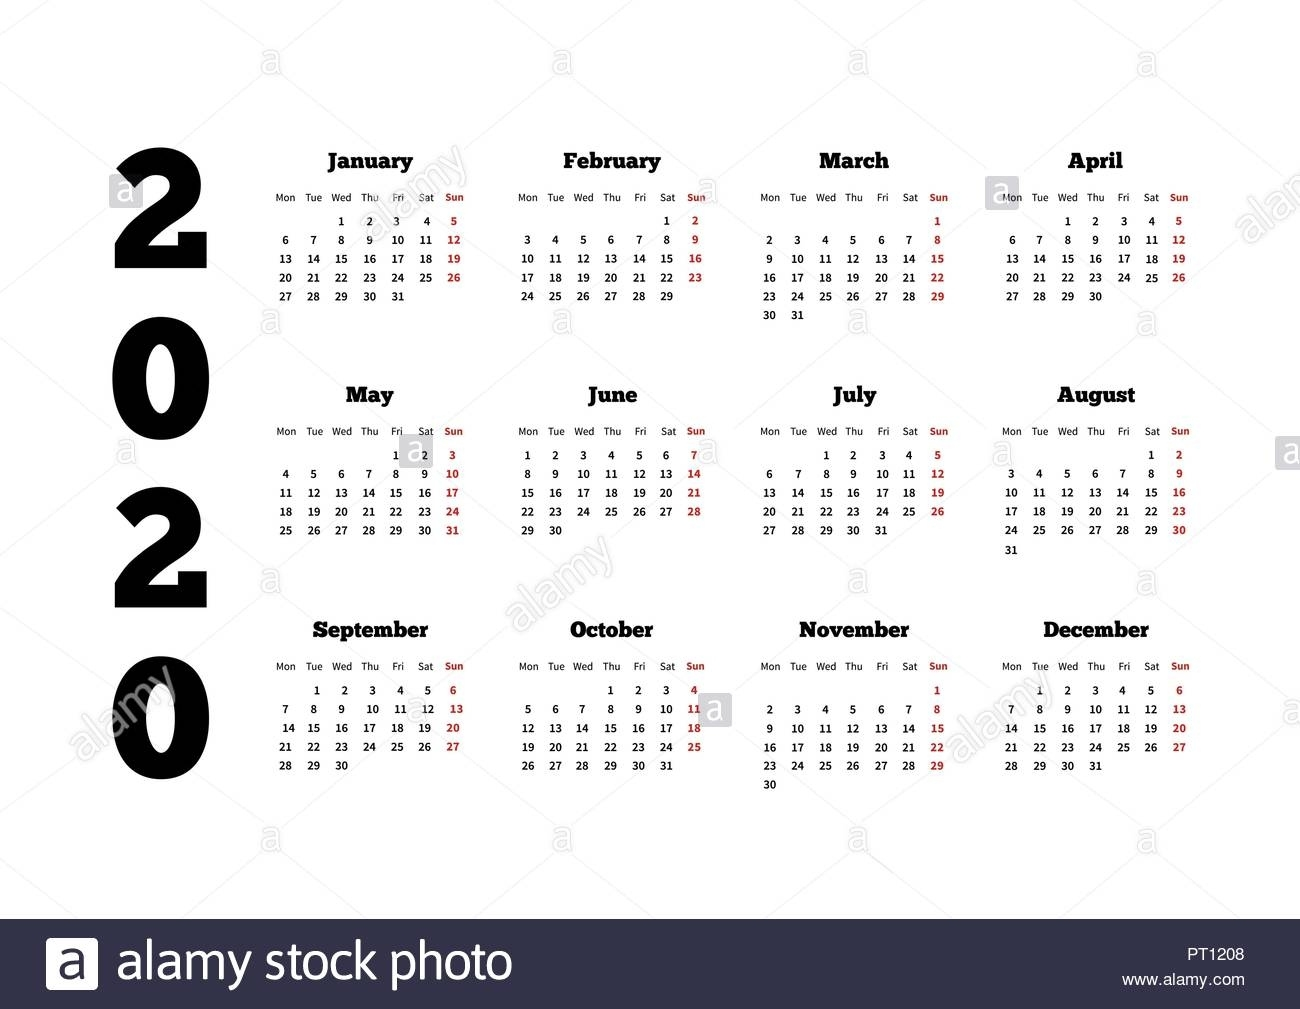 Calendar On 2020 Year With Week Starting From Monday, A4 Sheet Stock 2020 Calendar Starting On Monday